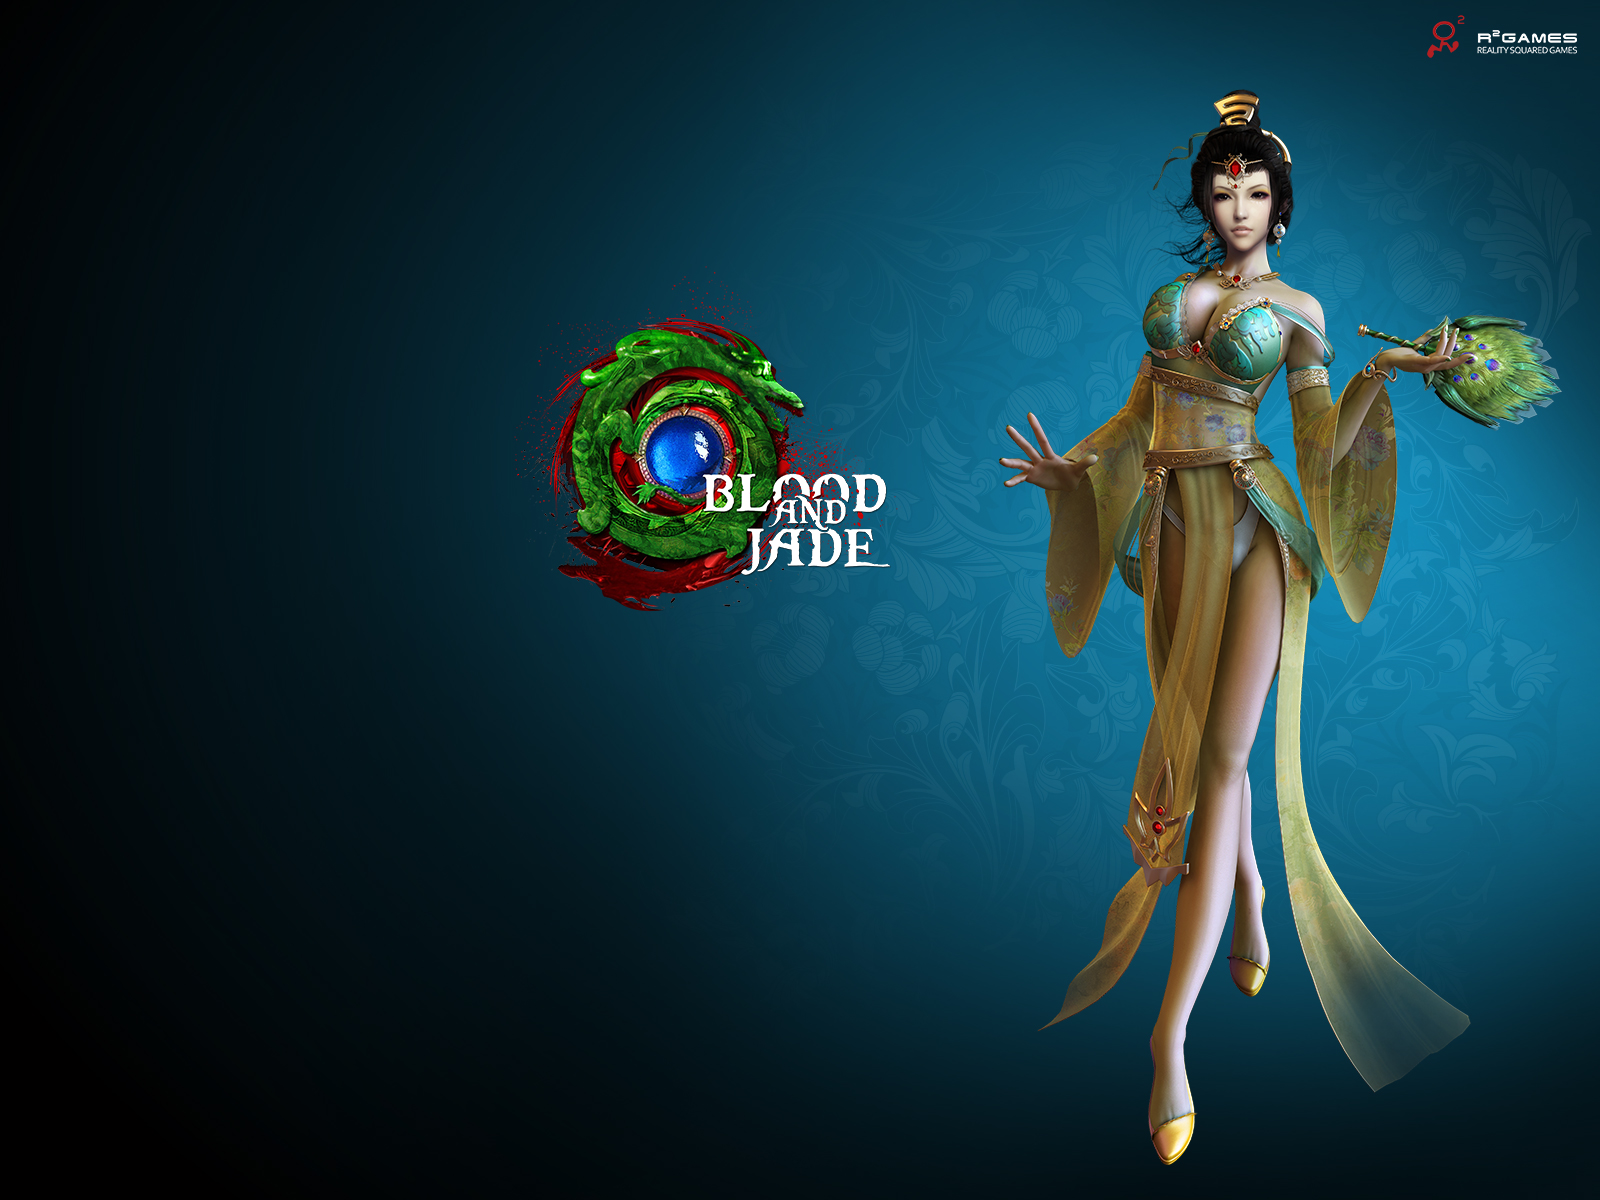 Blood and jade game porn sexy images